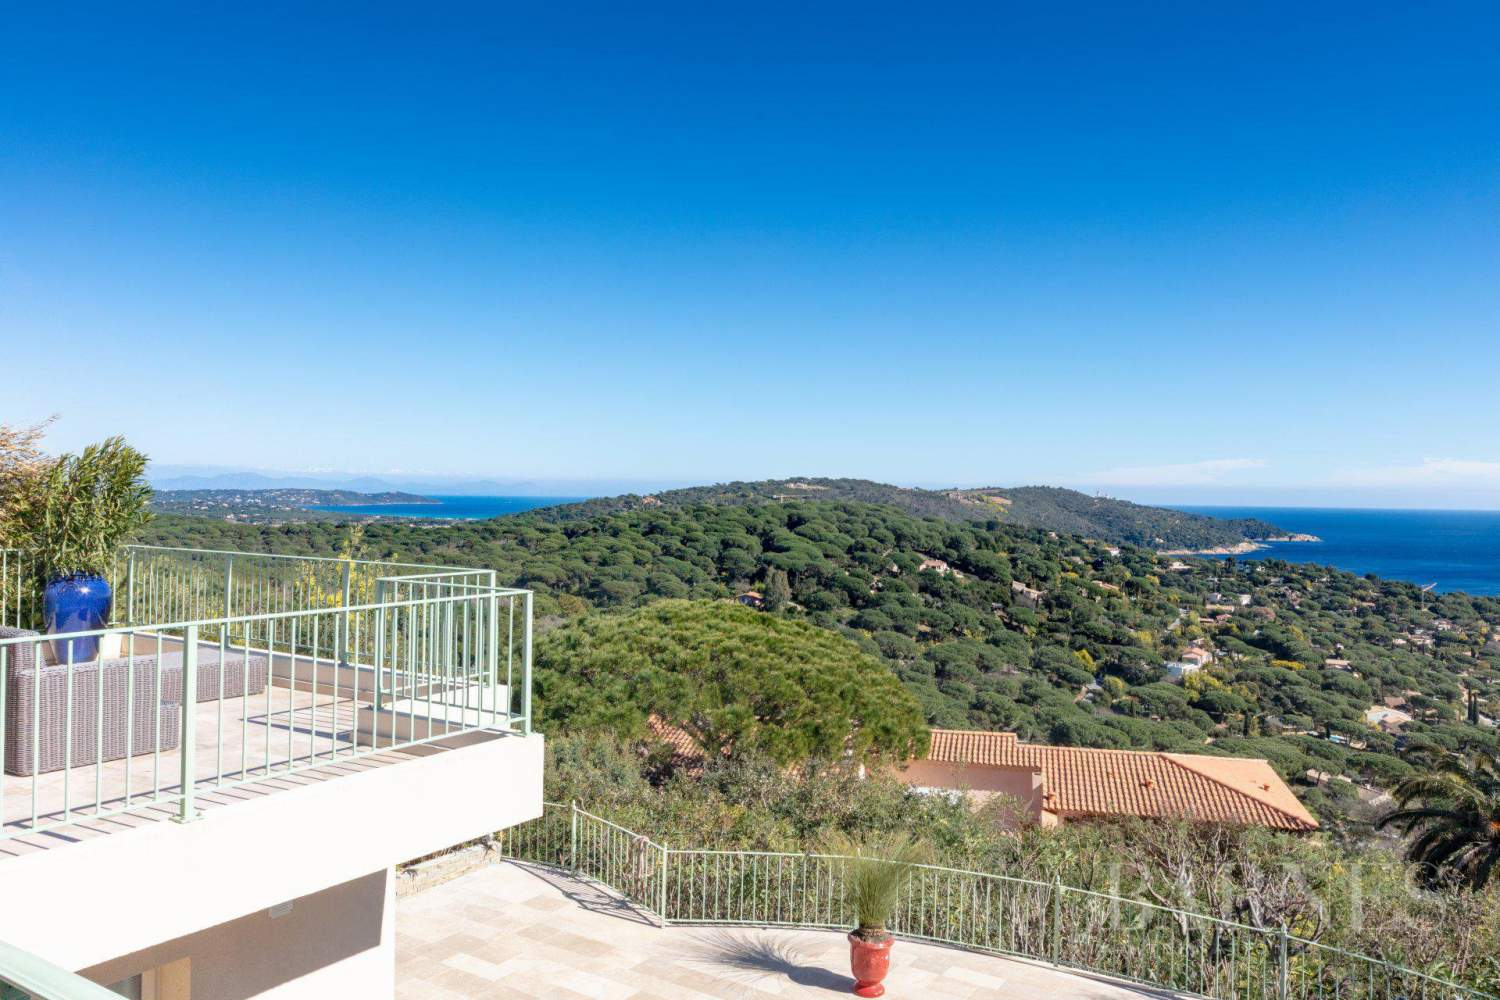 RAMATUELLE - Escalet - Villa with panoramic sea view - 5 bedrooms - Pool picture 14